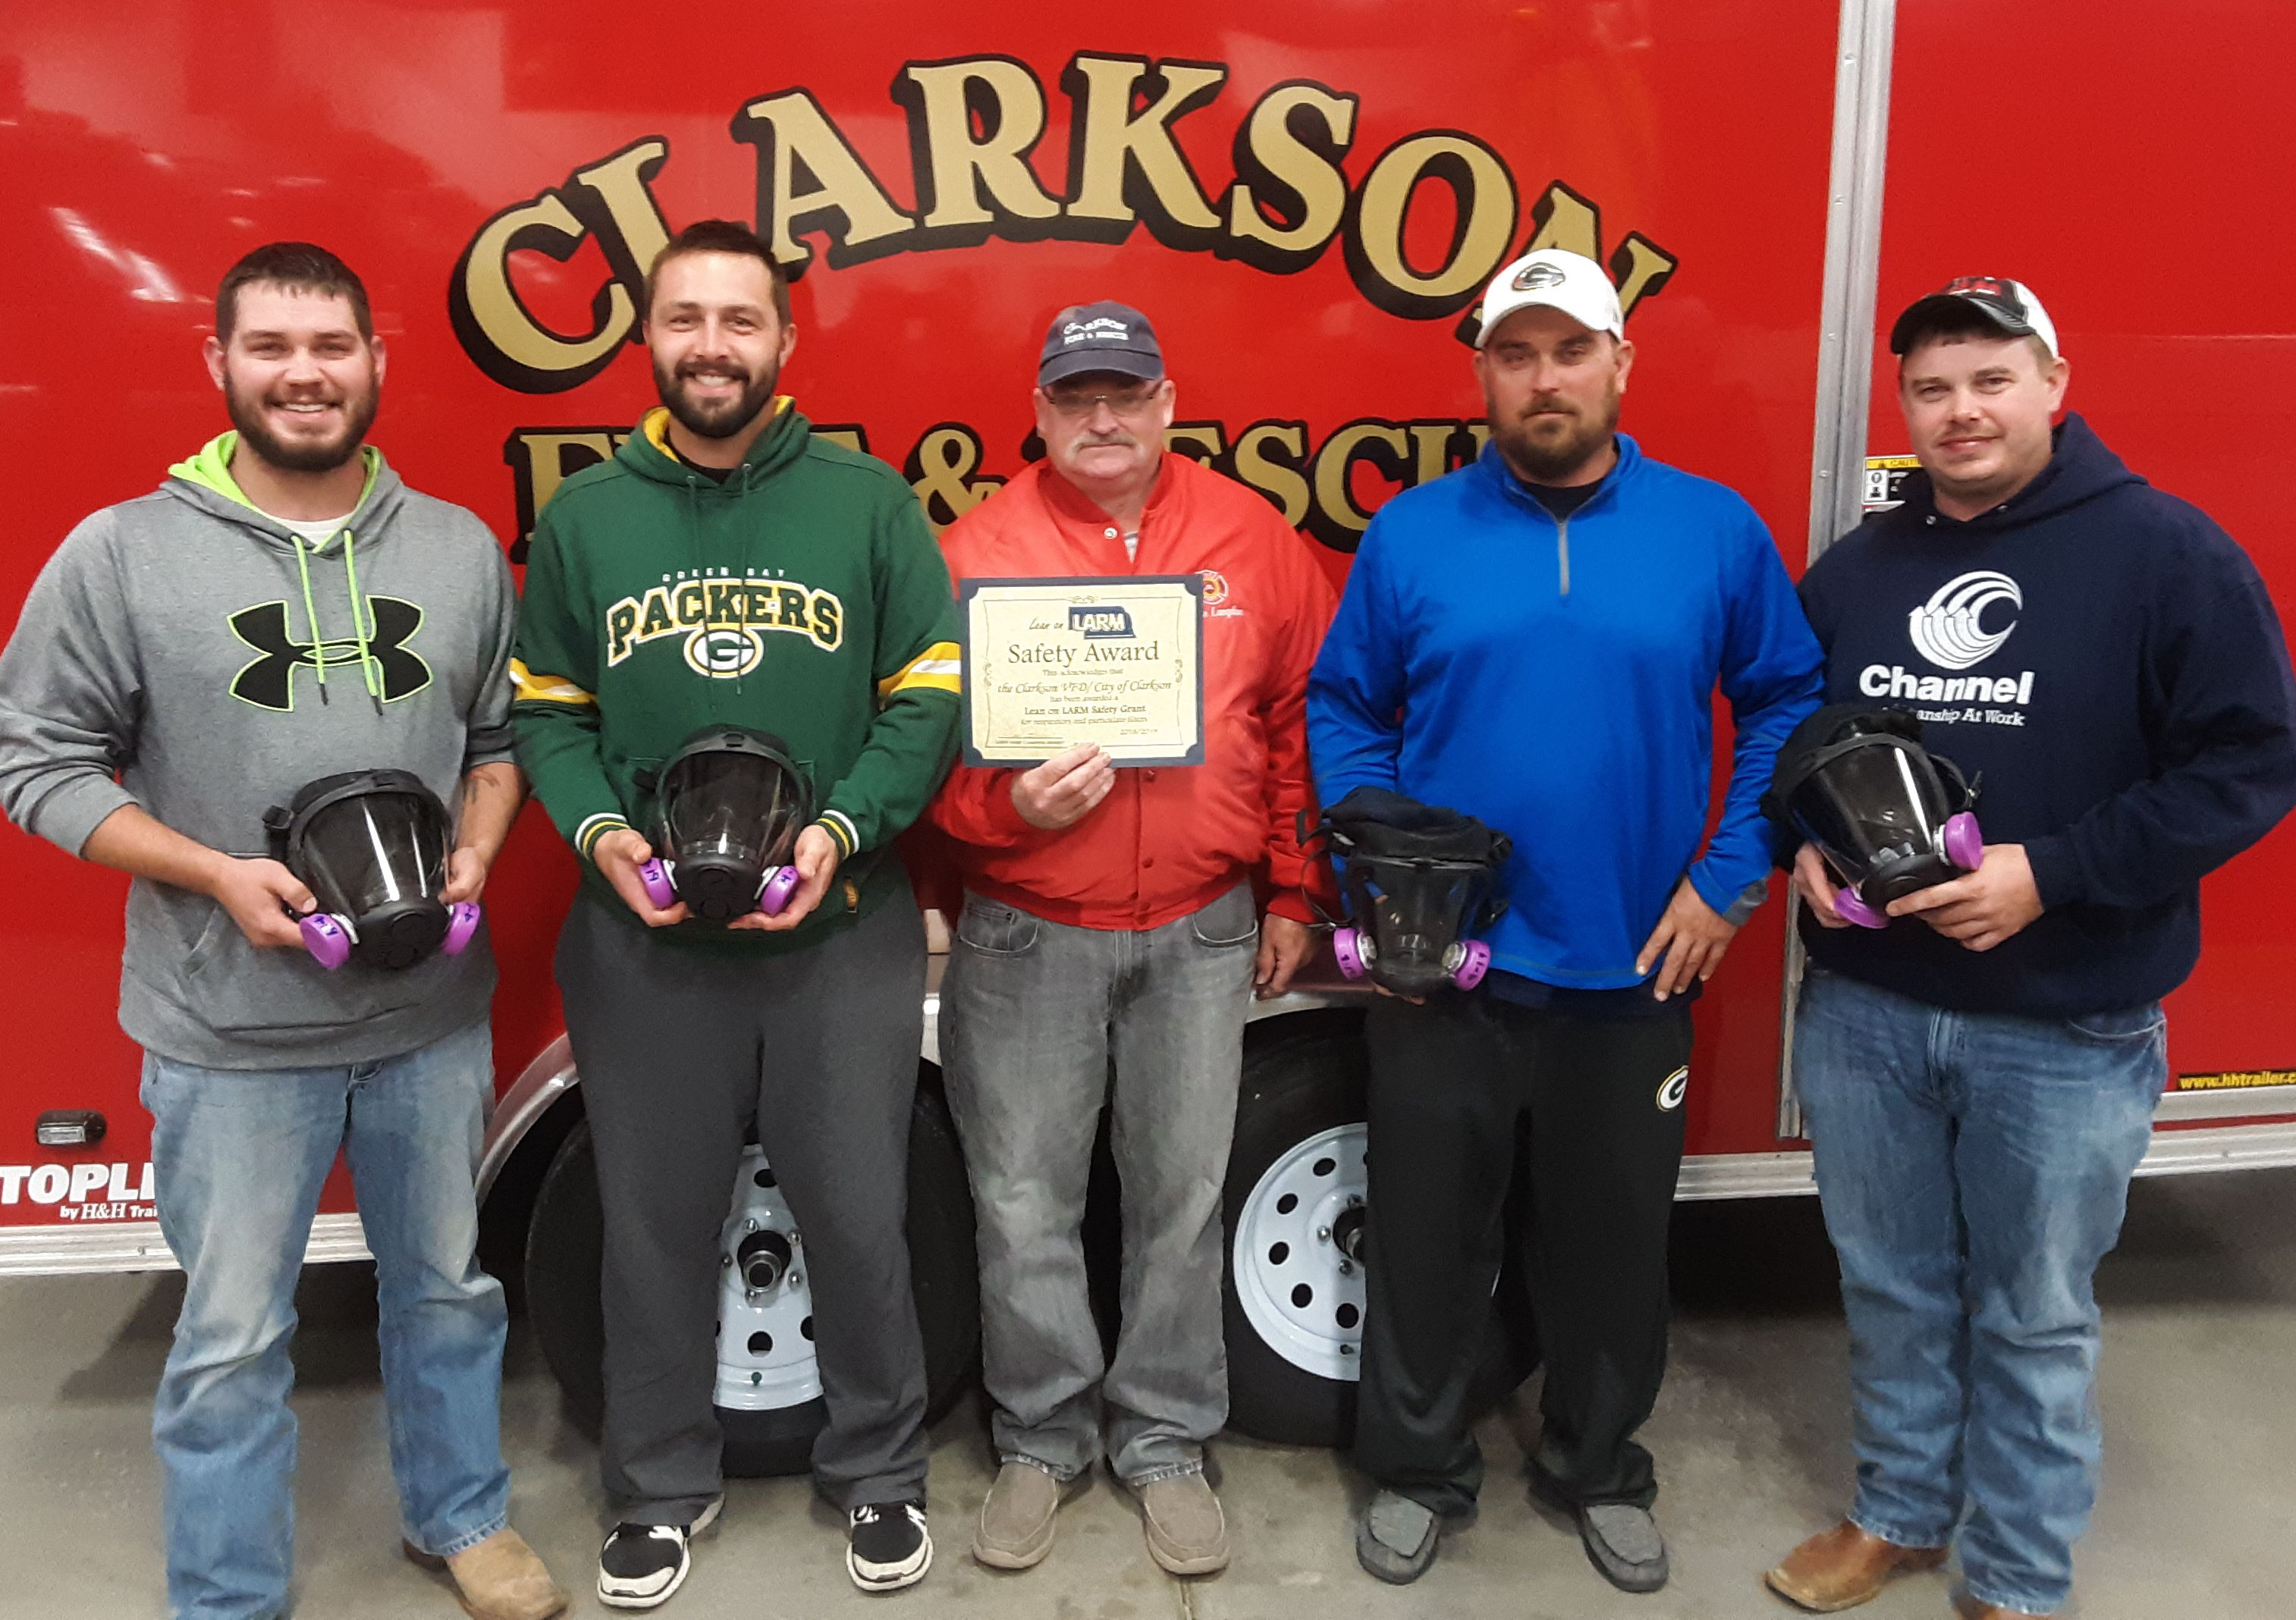 Clarkson Fire Department - Lean on LARM Safety Award recipient